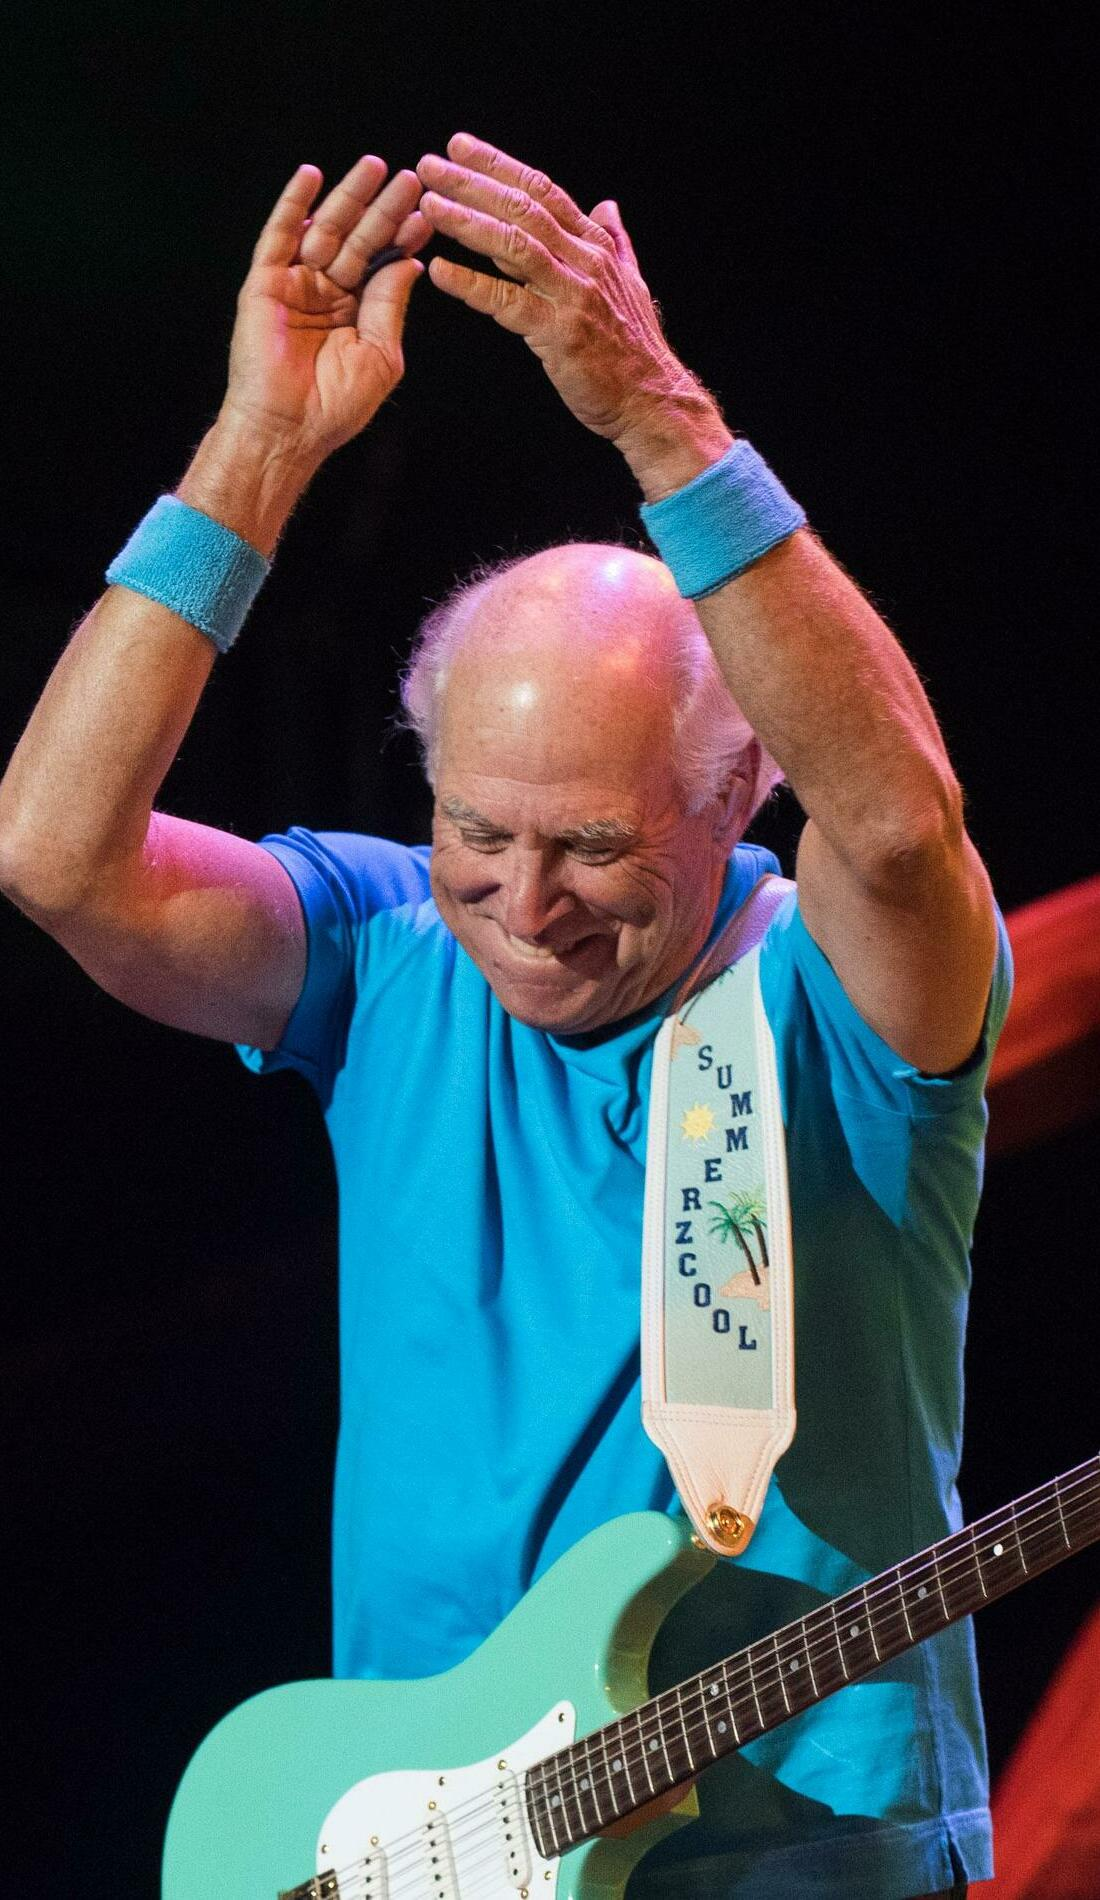 A Jimmy Buffett & The Coral Reefer Band live event